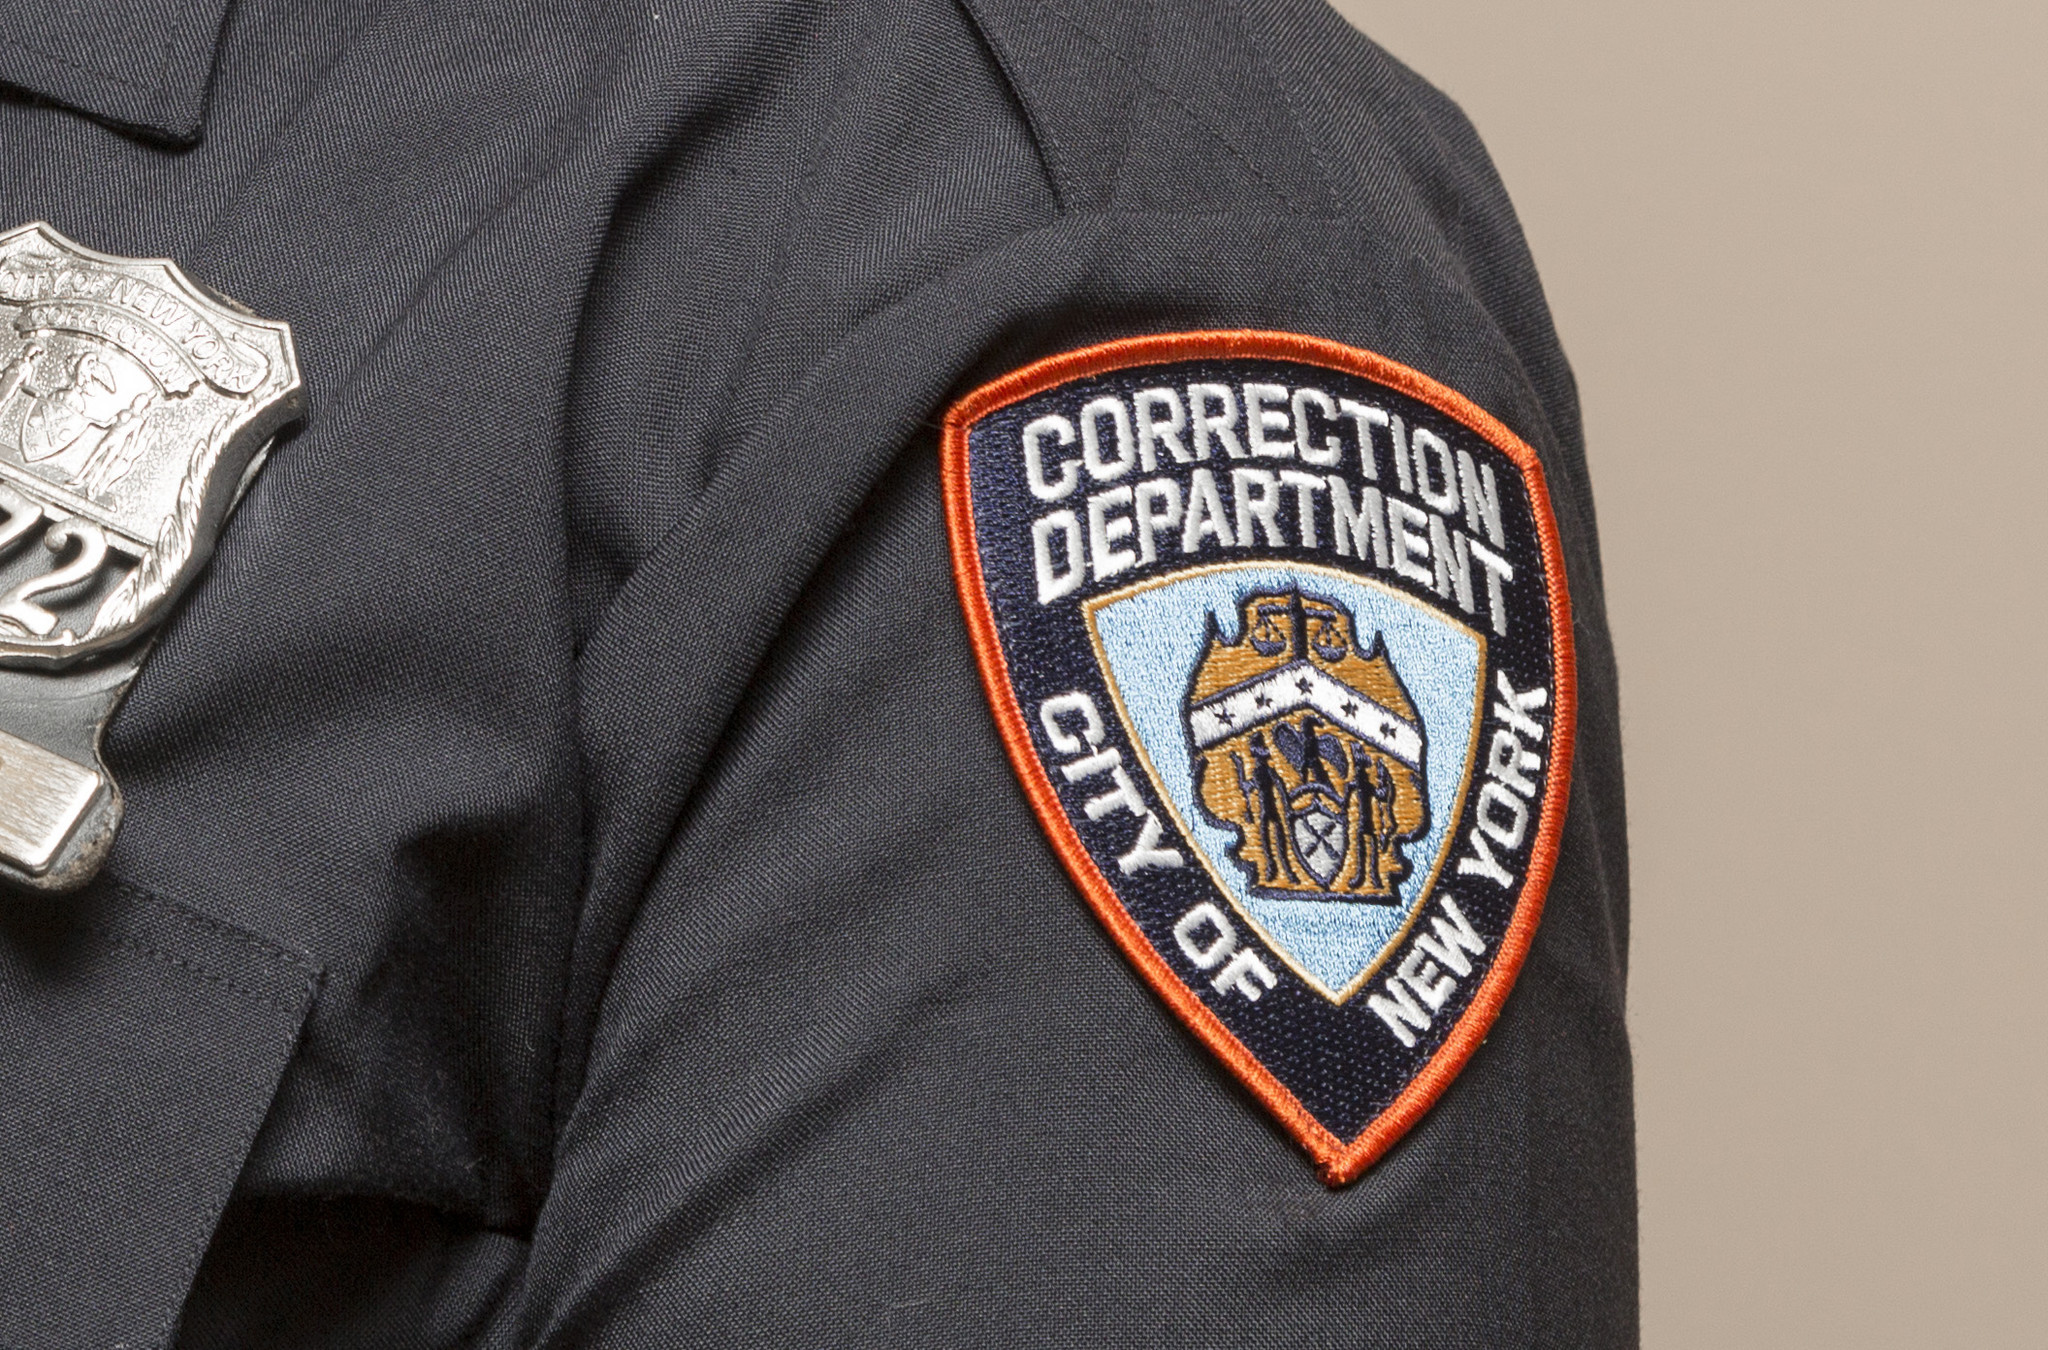 NYC Correction Department workers toiled away in office while bosses worked remotely: sources